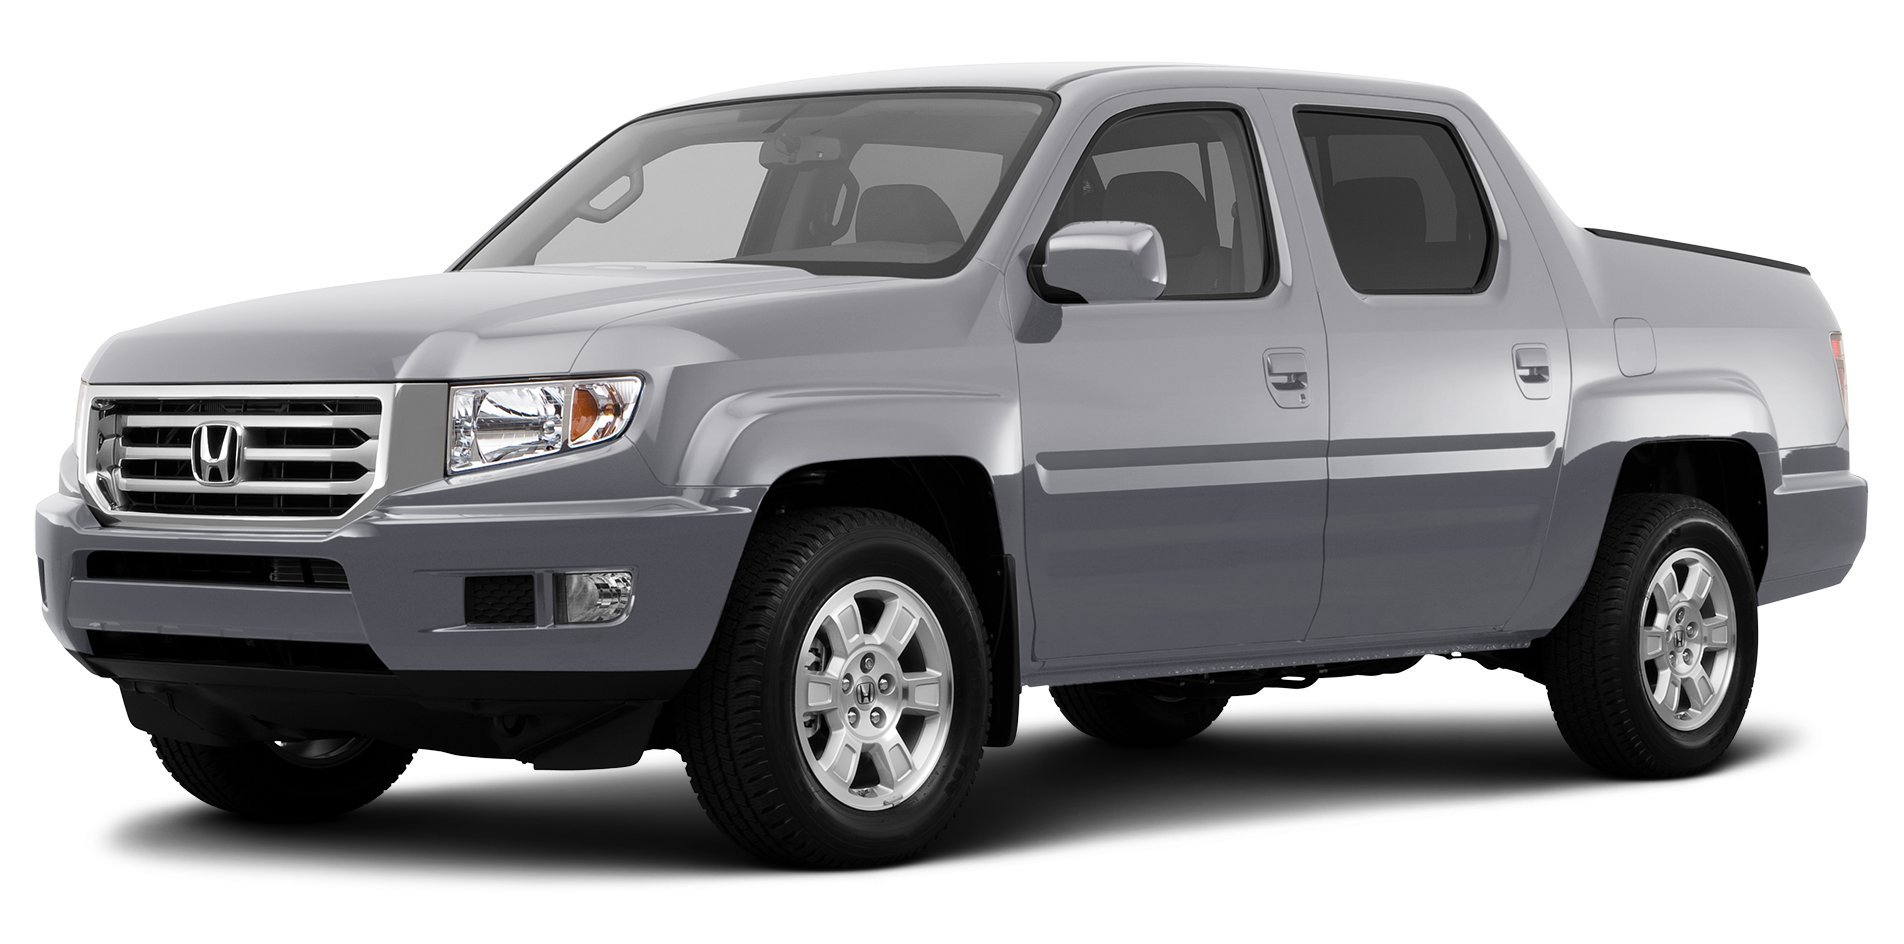 2013 honda ridgeline reviews images and. Black Bedroom Furniture Sets. Home Design Ideas